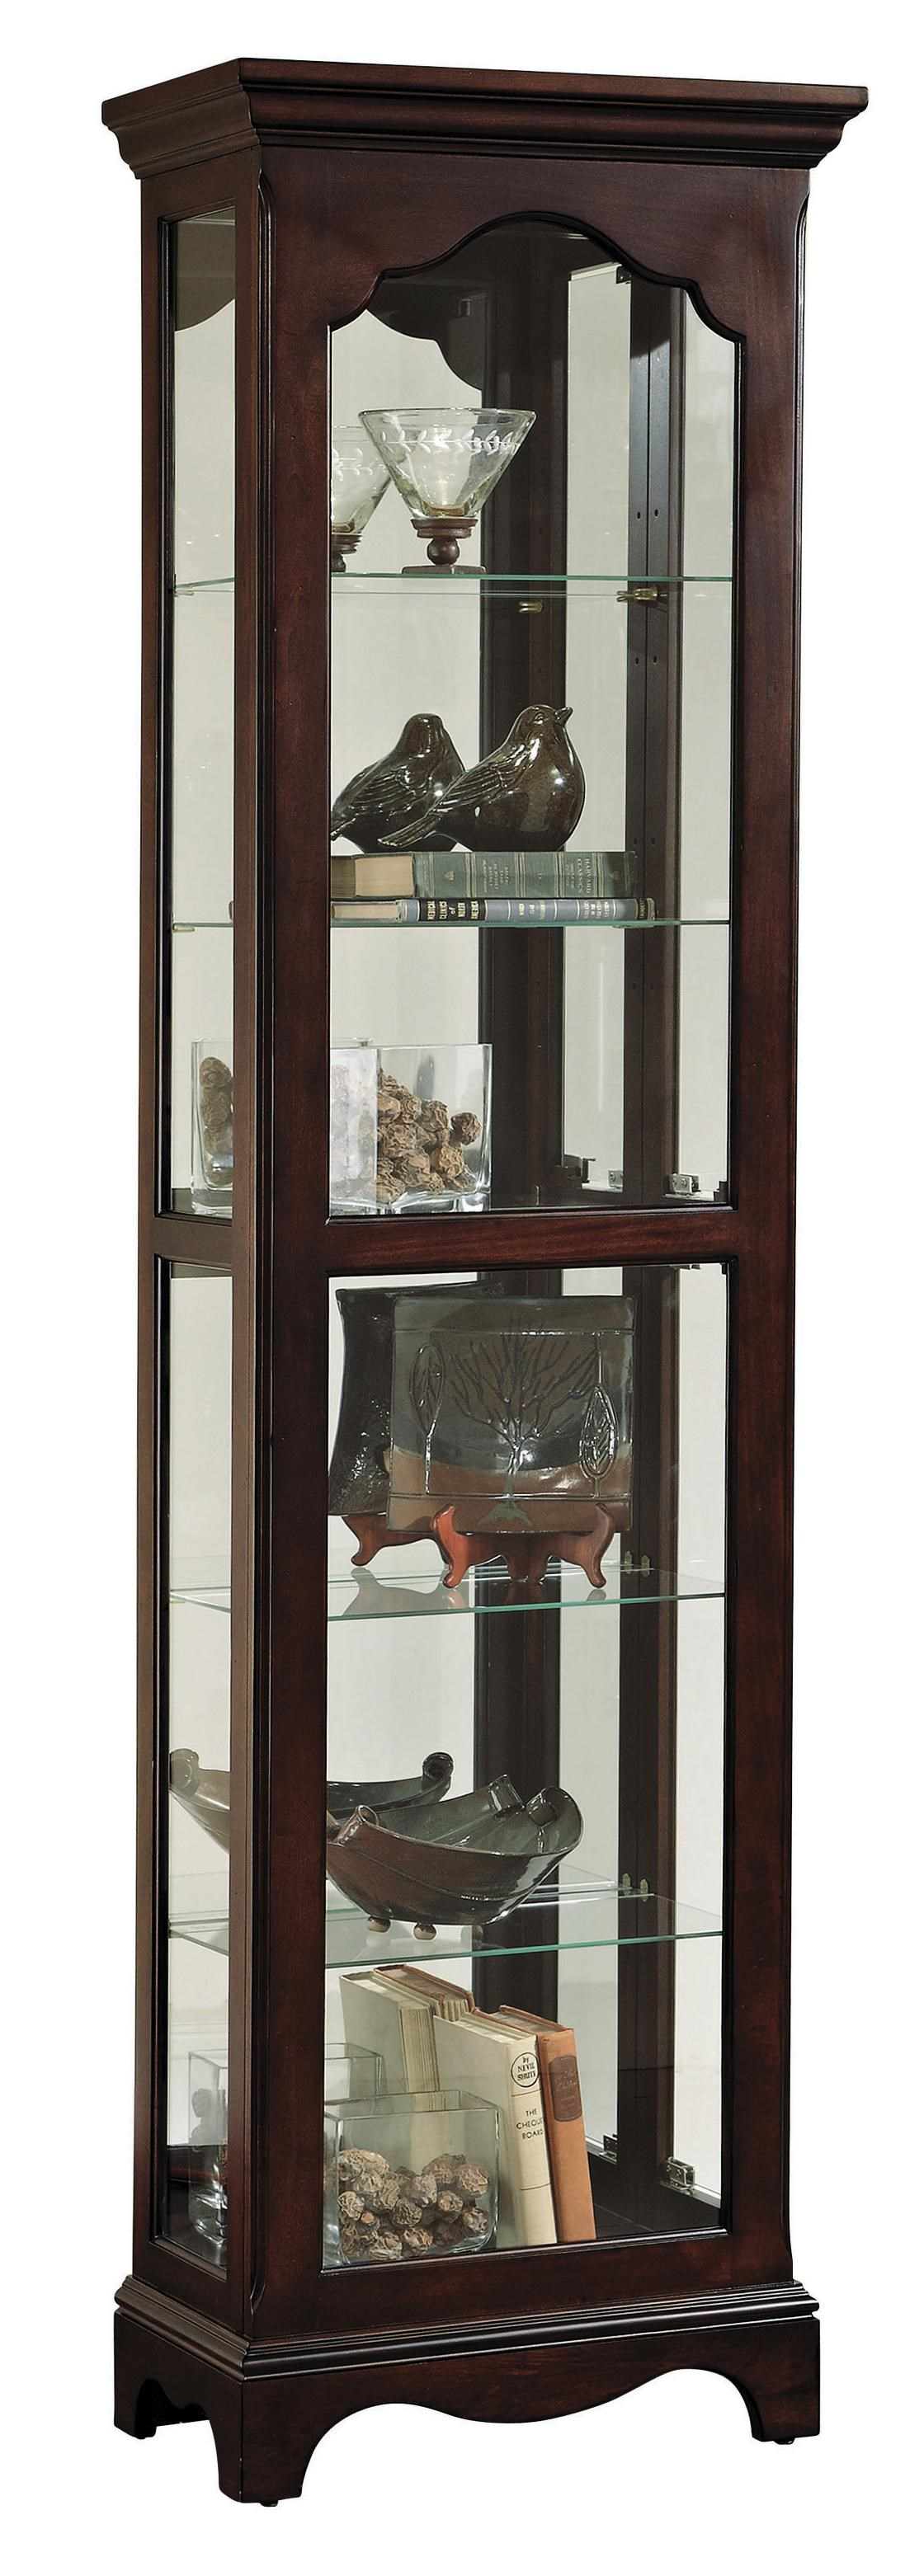 Lovely Curios Narrow Traditional Curio Cabinet By Pulaski Furniture